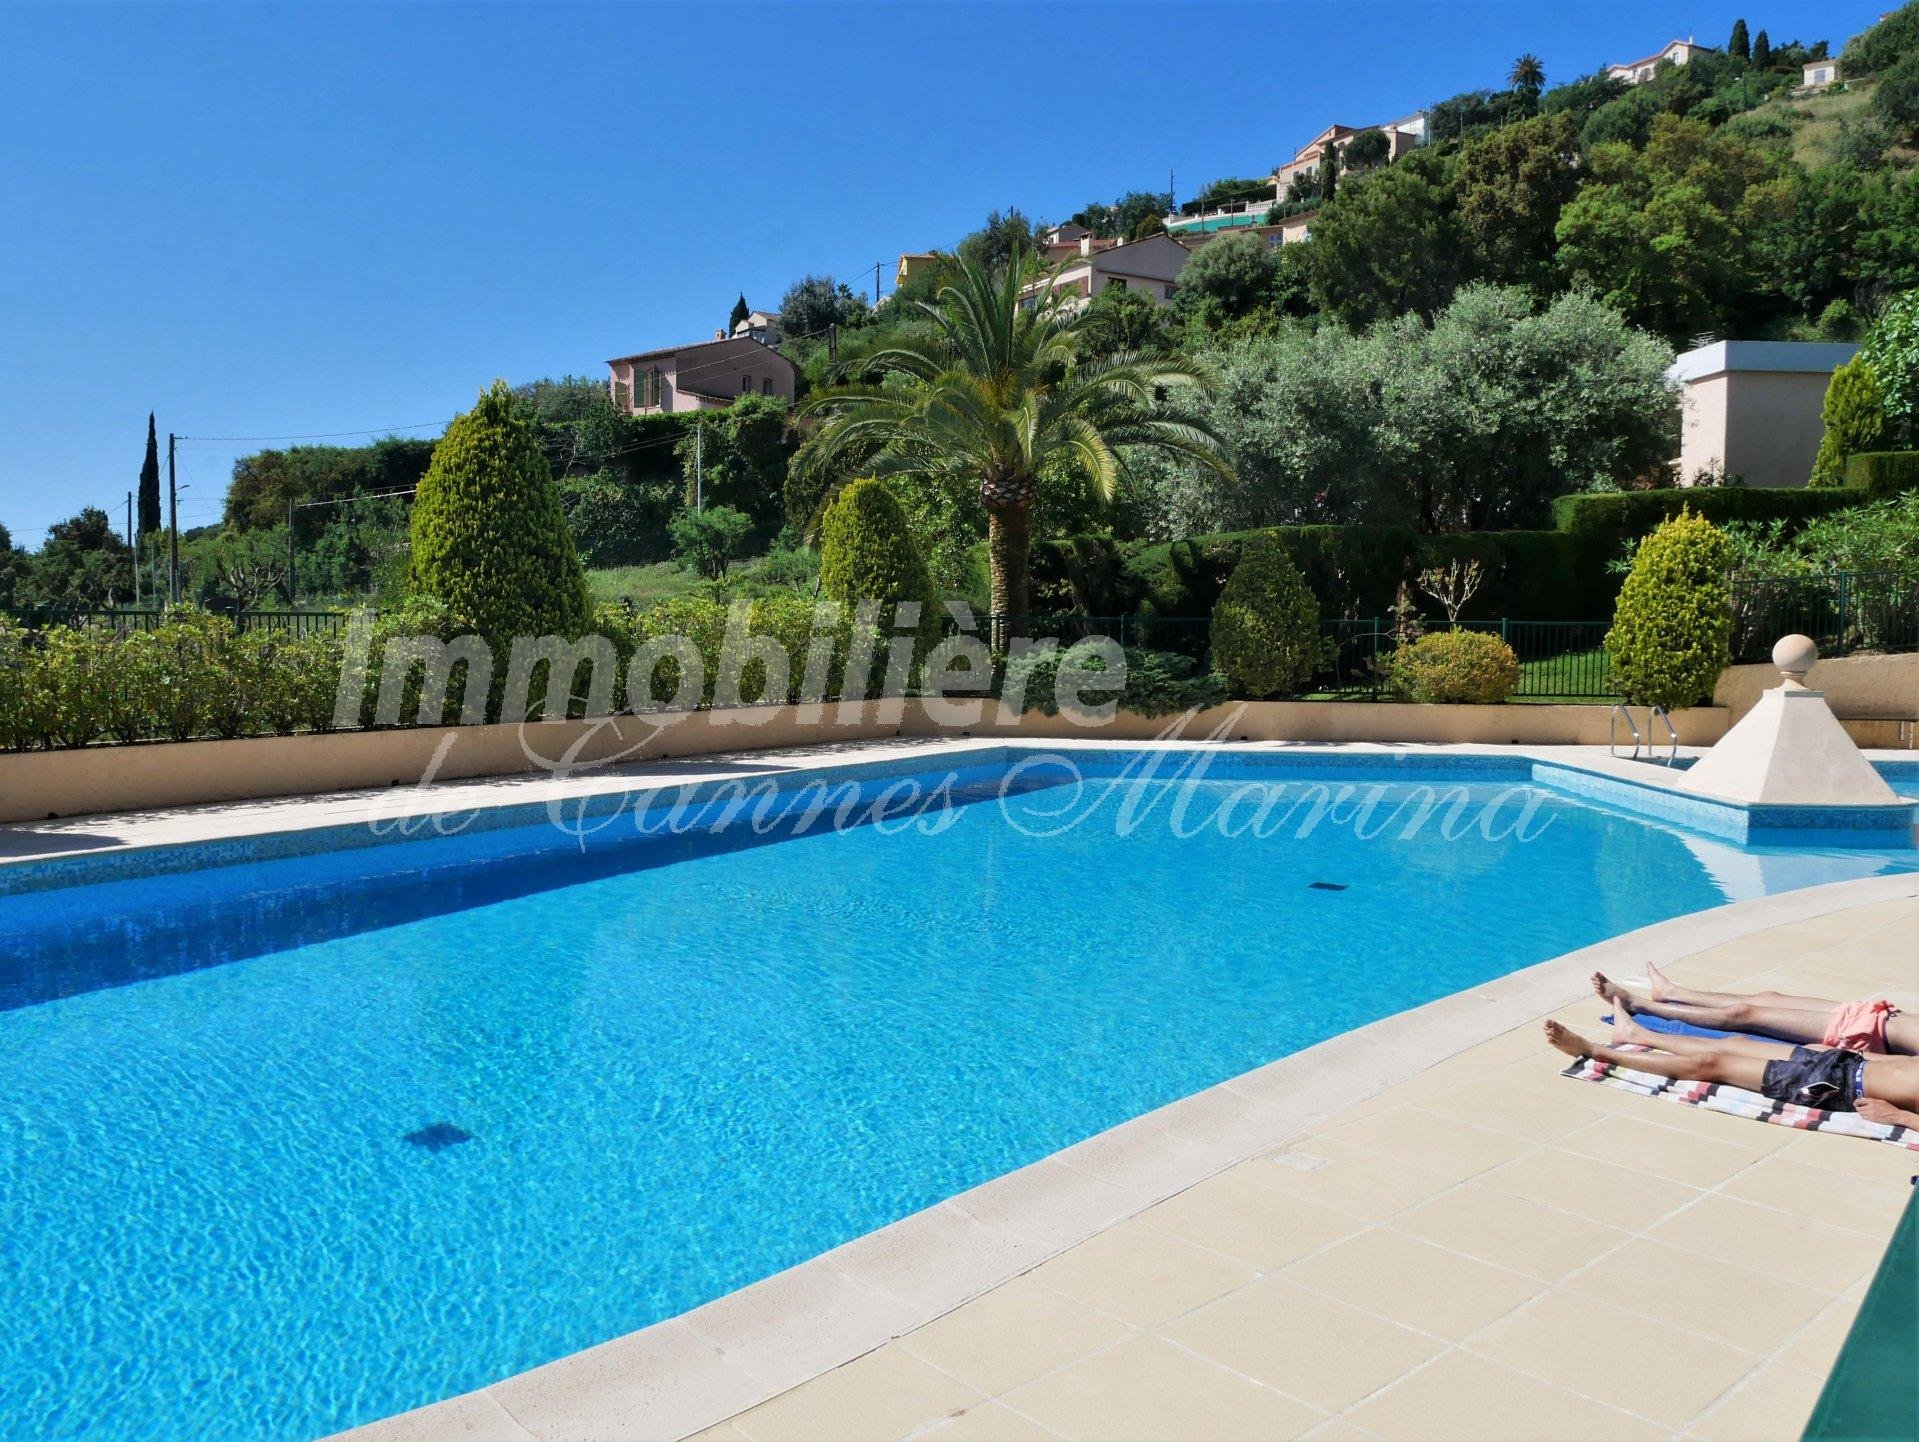 3-bedroom apartment - Nice residence with pool